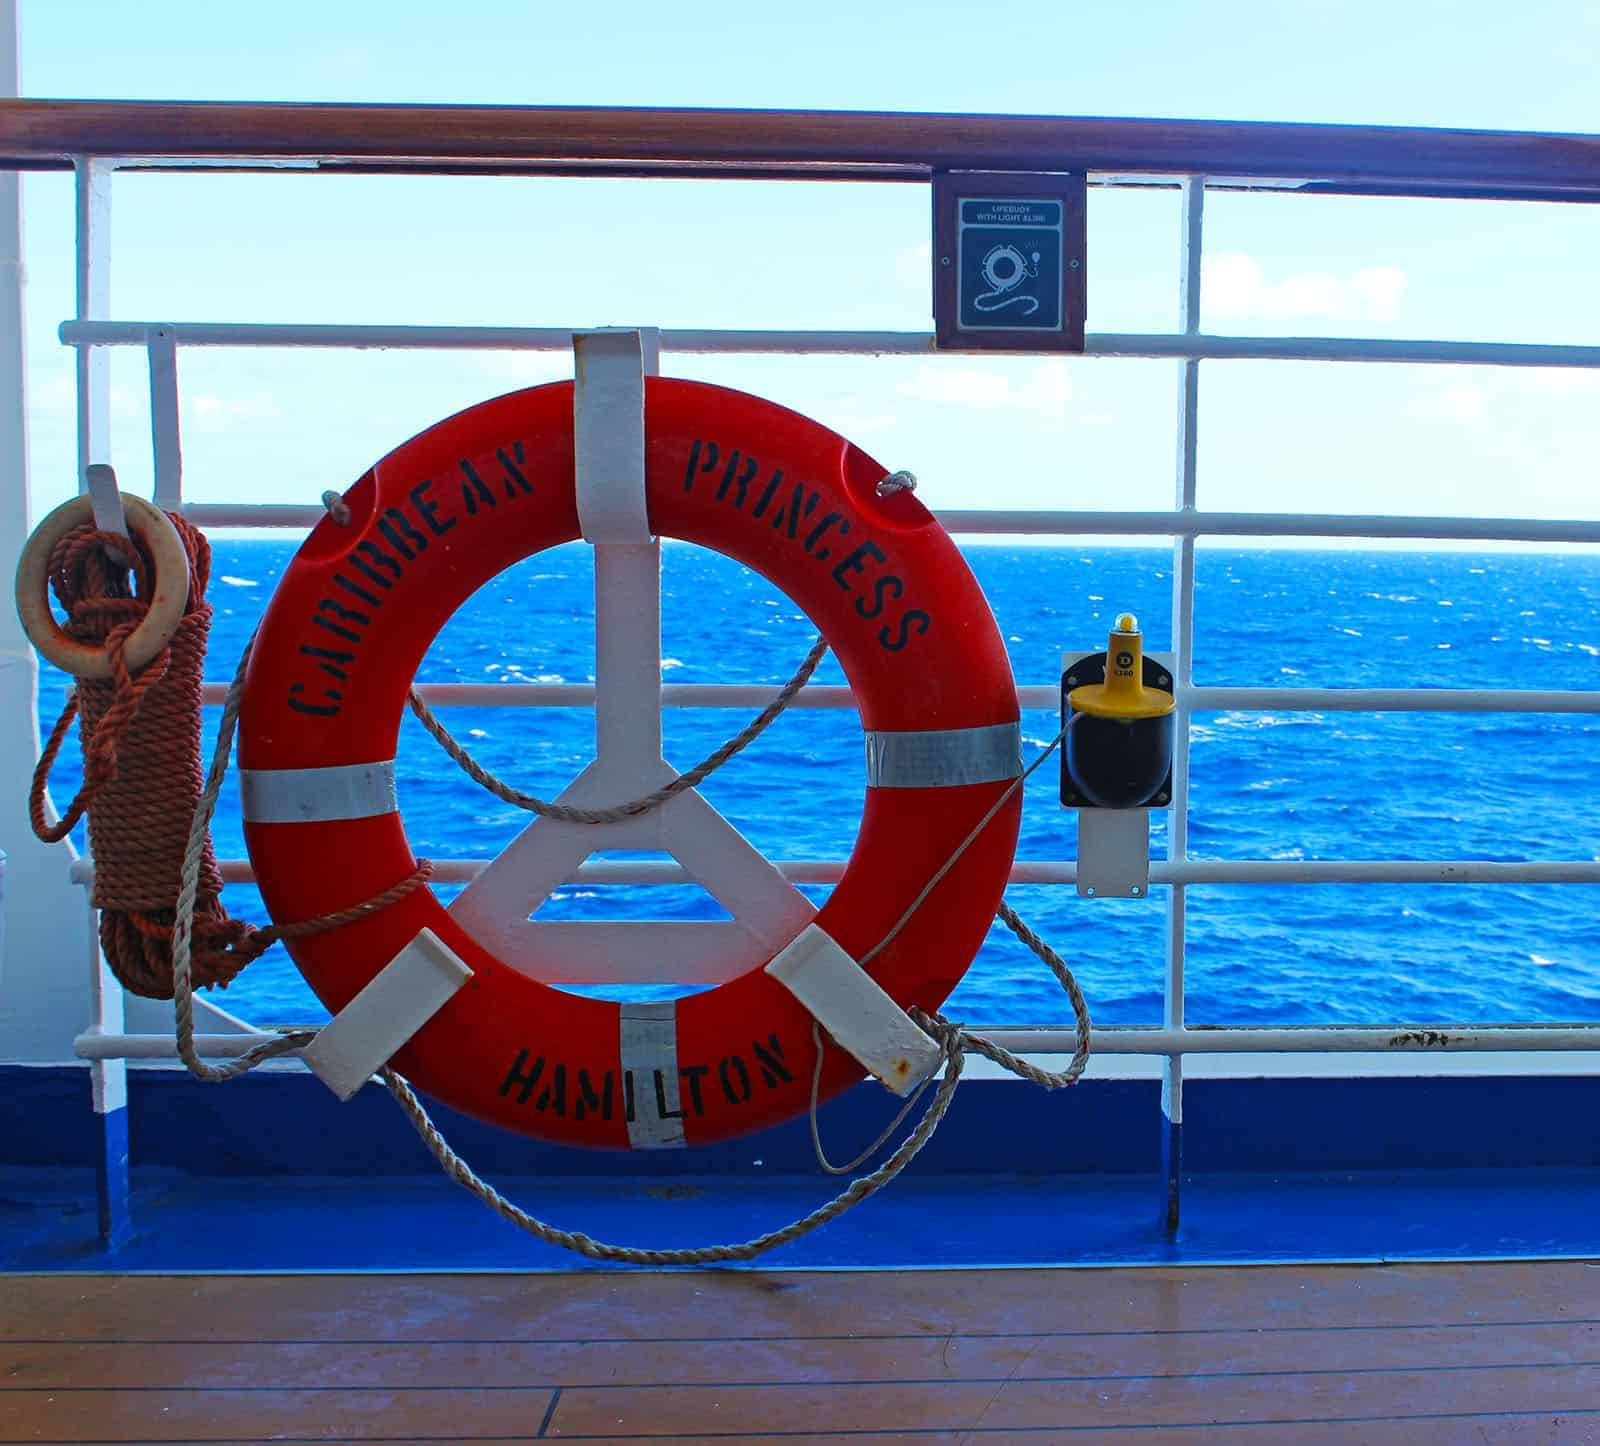 Caribbean Princess - Day At Sea on the Cruise Ship